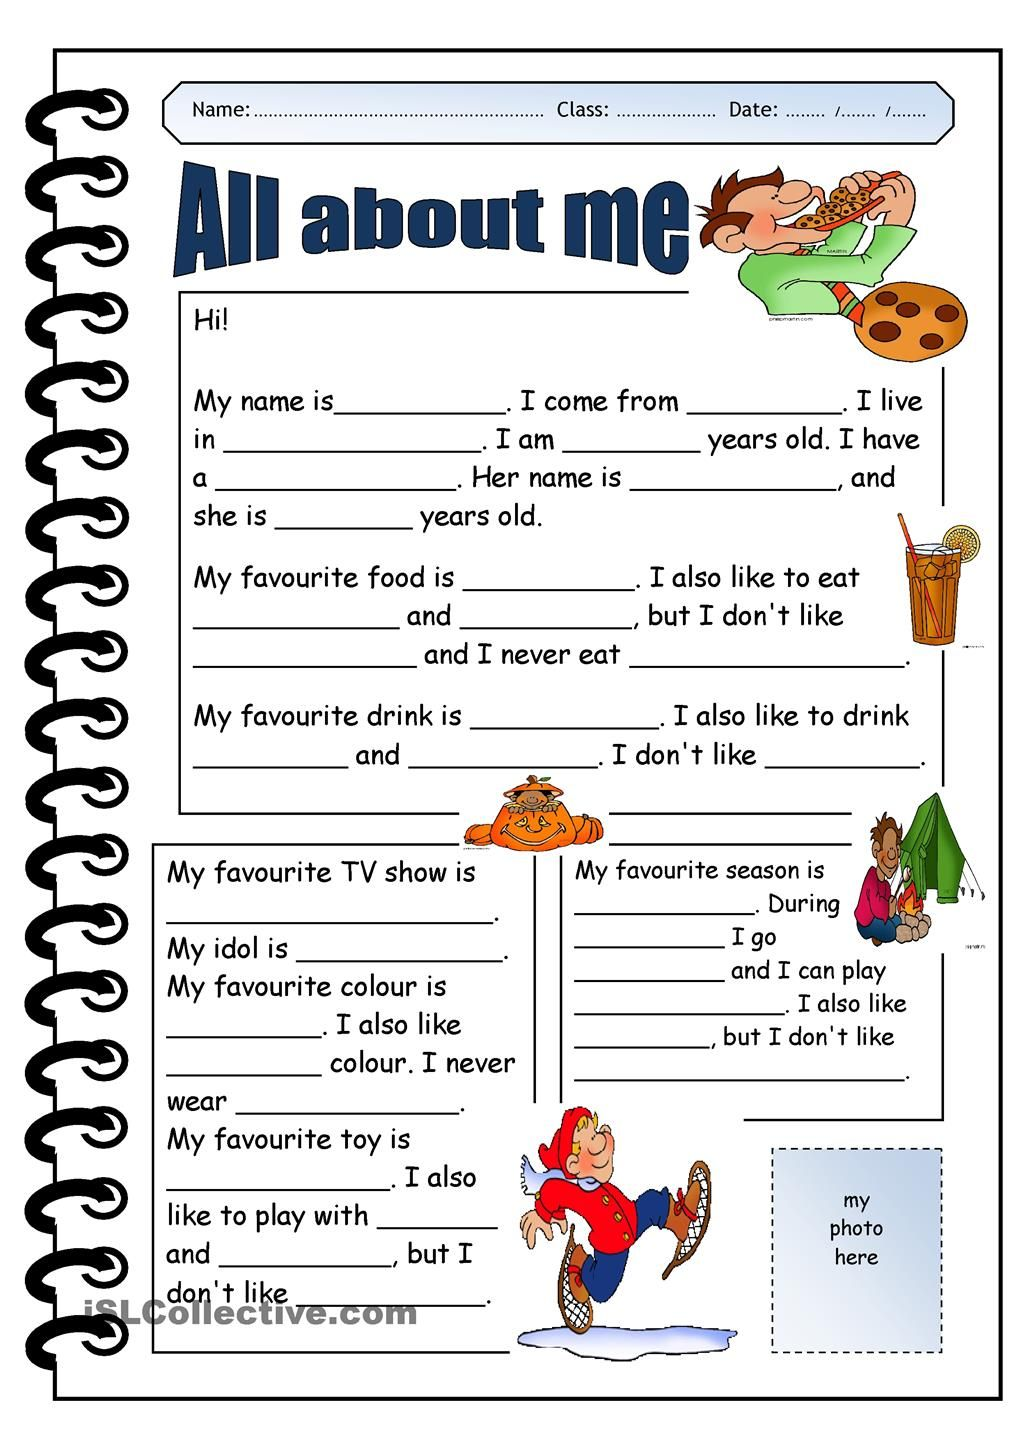 All About Me Printable Worksheets  Google Search  Counseling